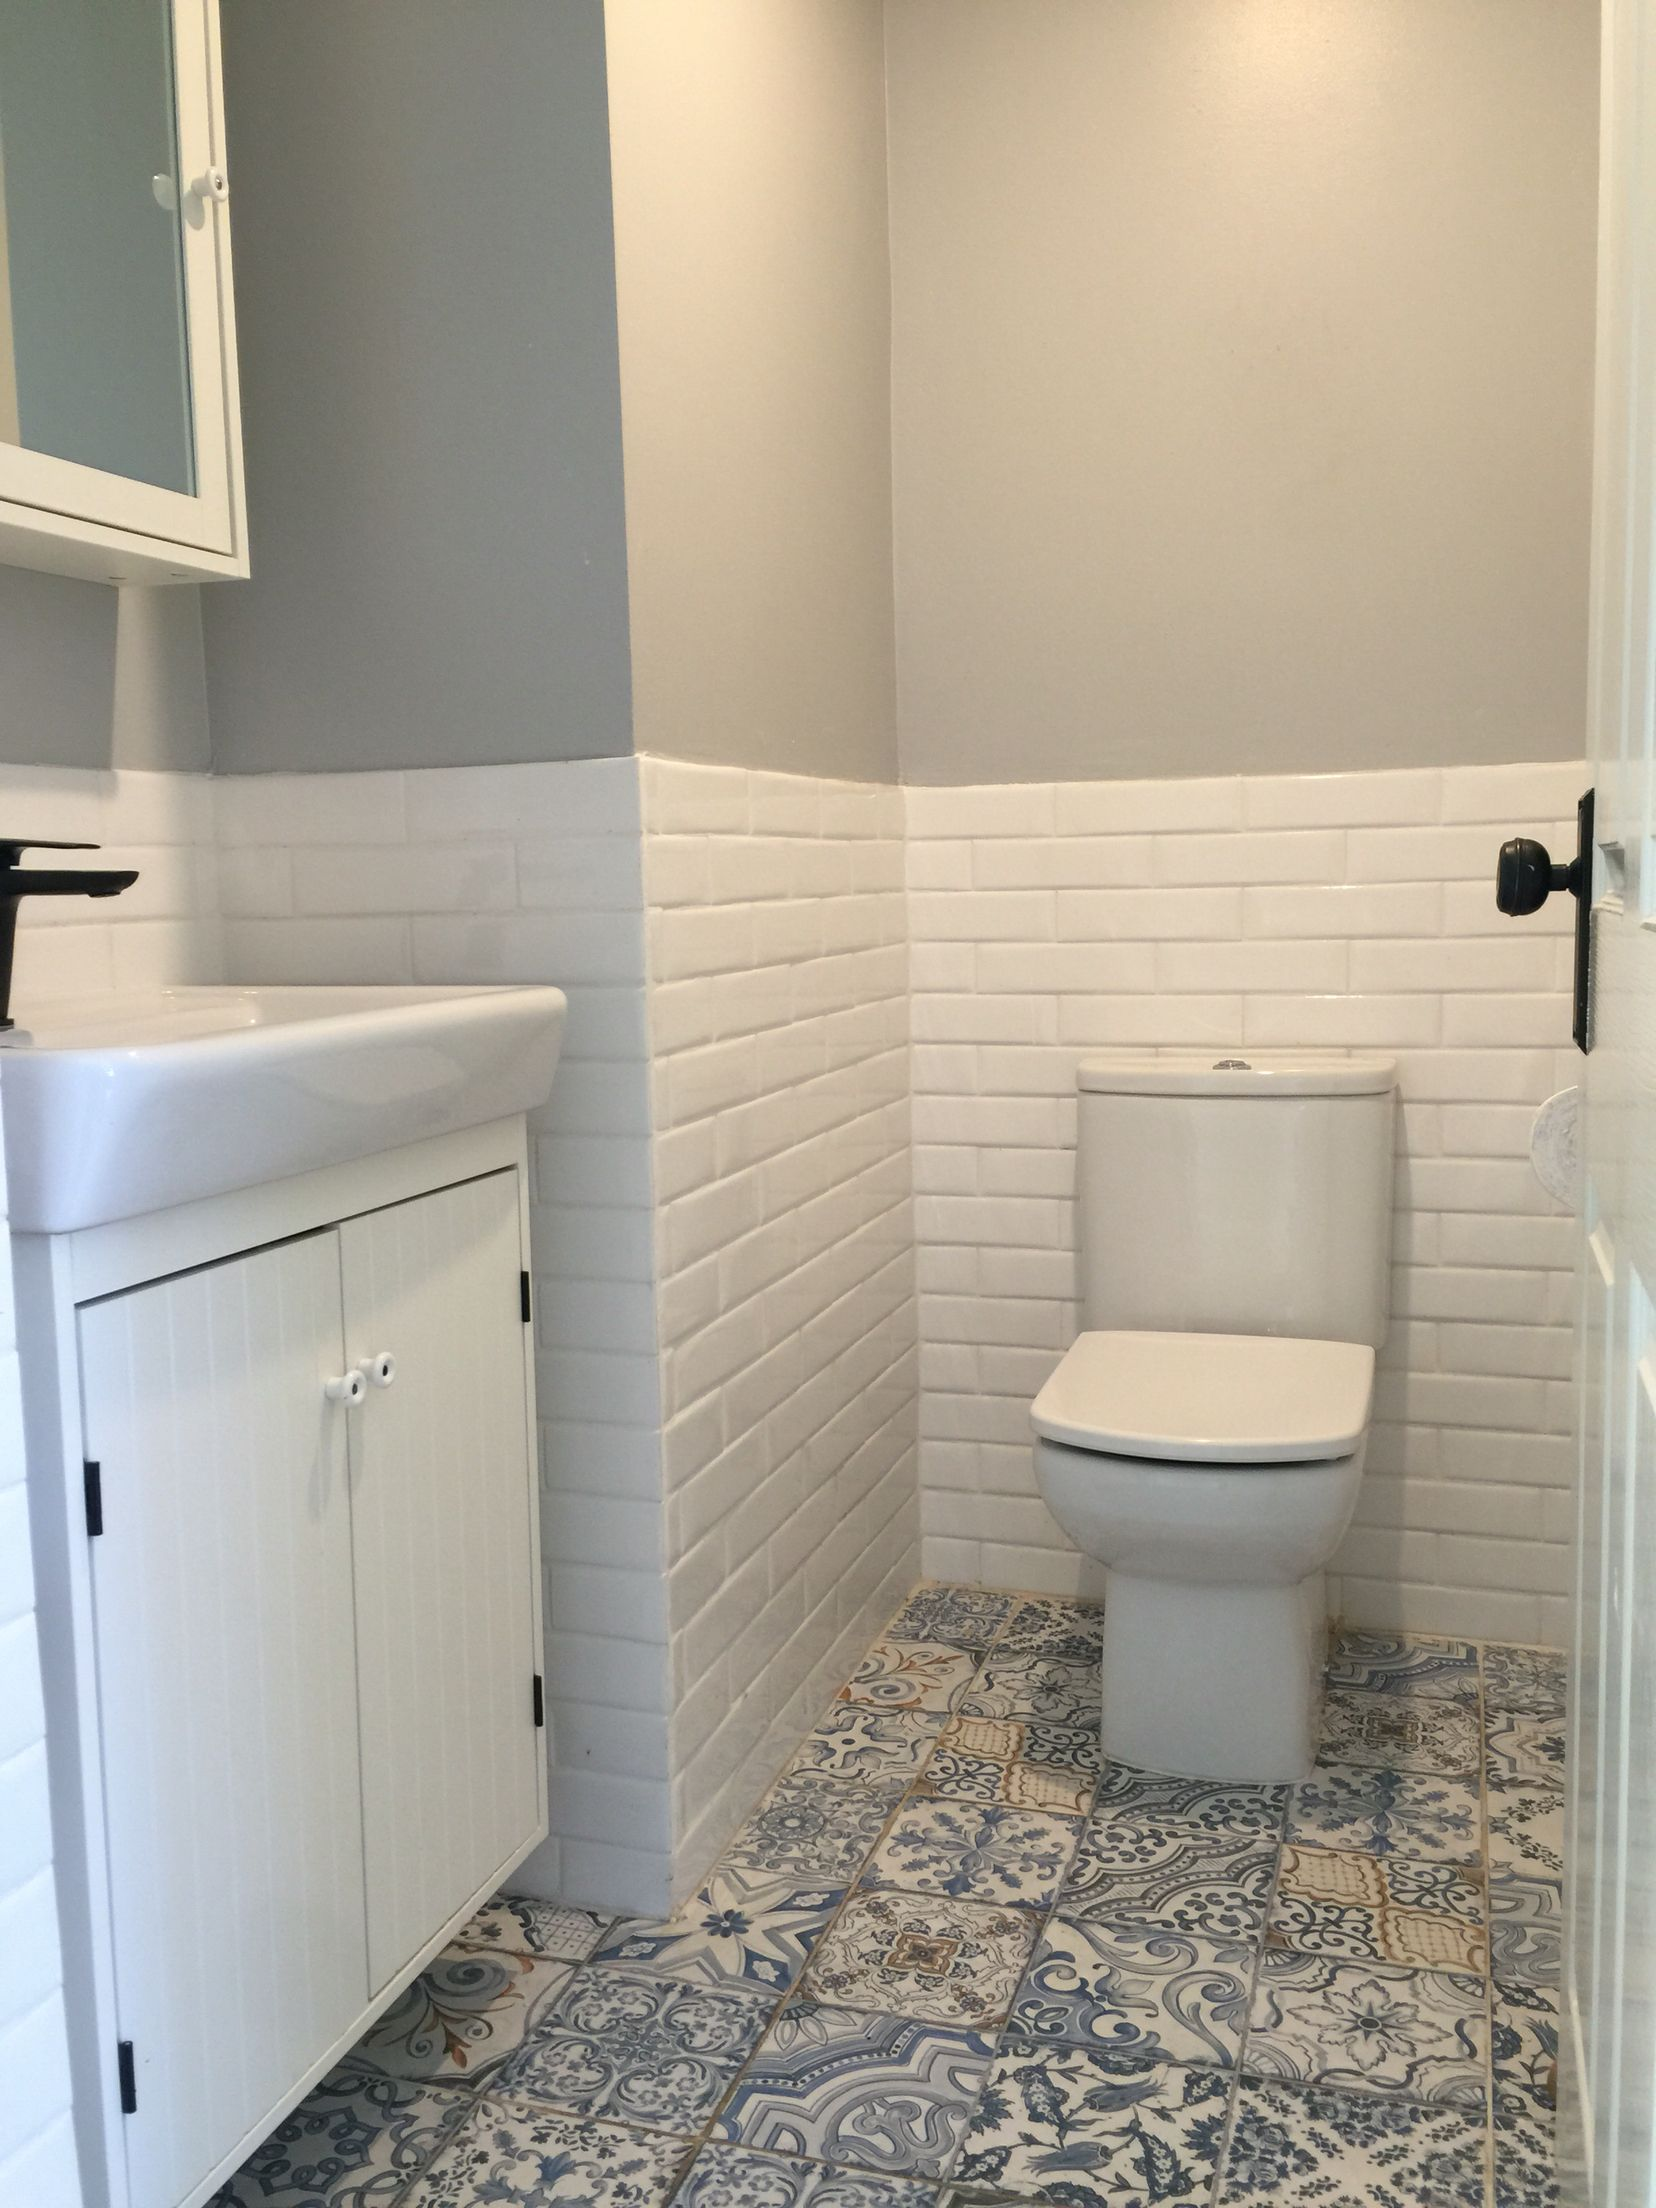 Powder Room Tiles. Vanity & Mirror from Ikea, tiles and tapware from ...